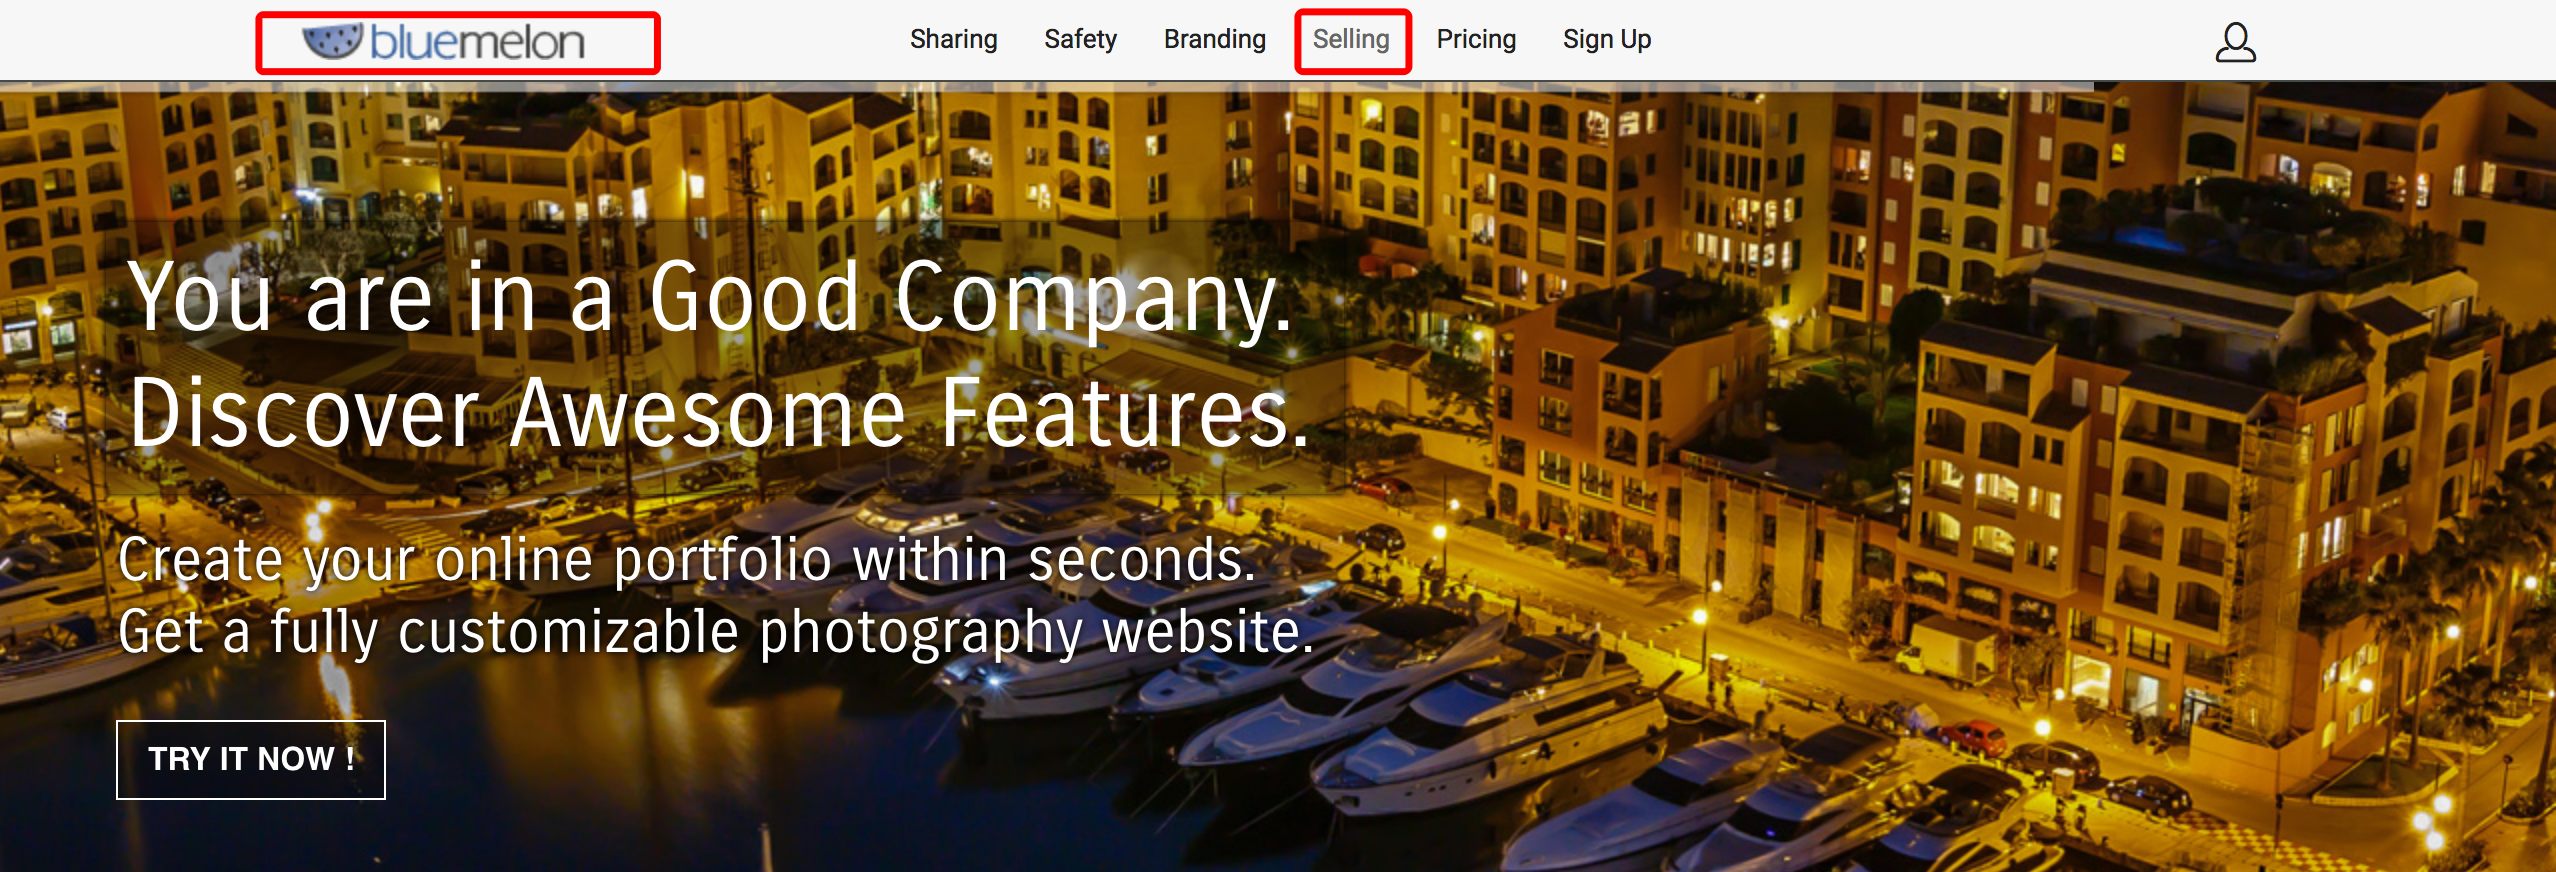 bluemelon-photography-website-to-earn-money-from-selling-photography-photos